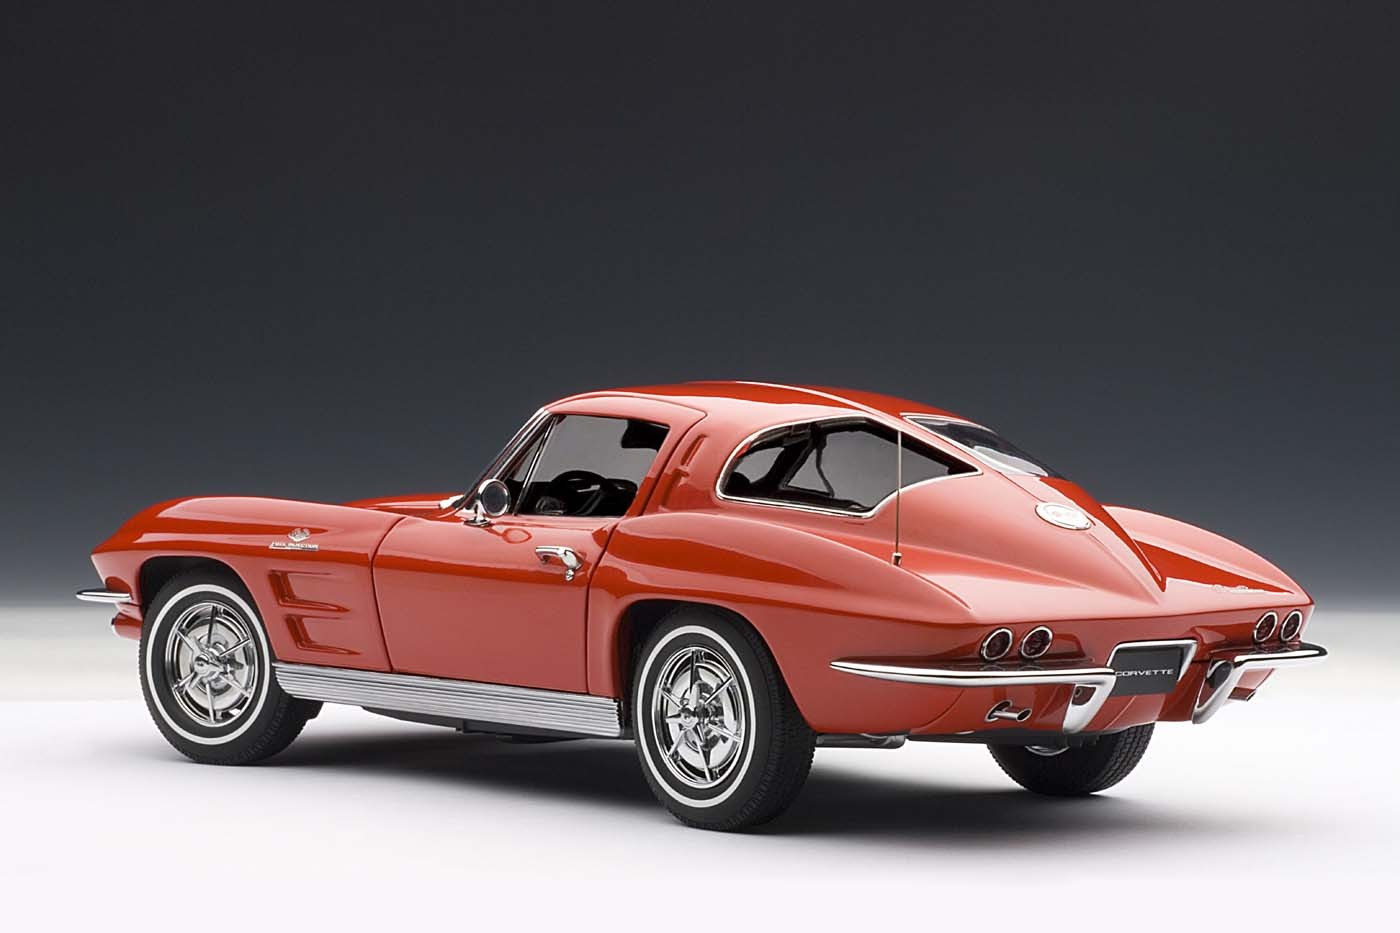 Autoart Highly Detailed Die Cast Model Red Corvette 1963